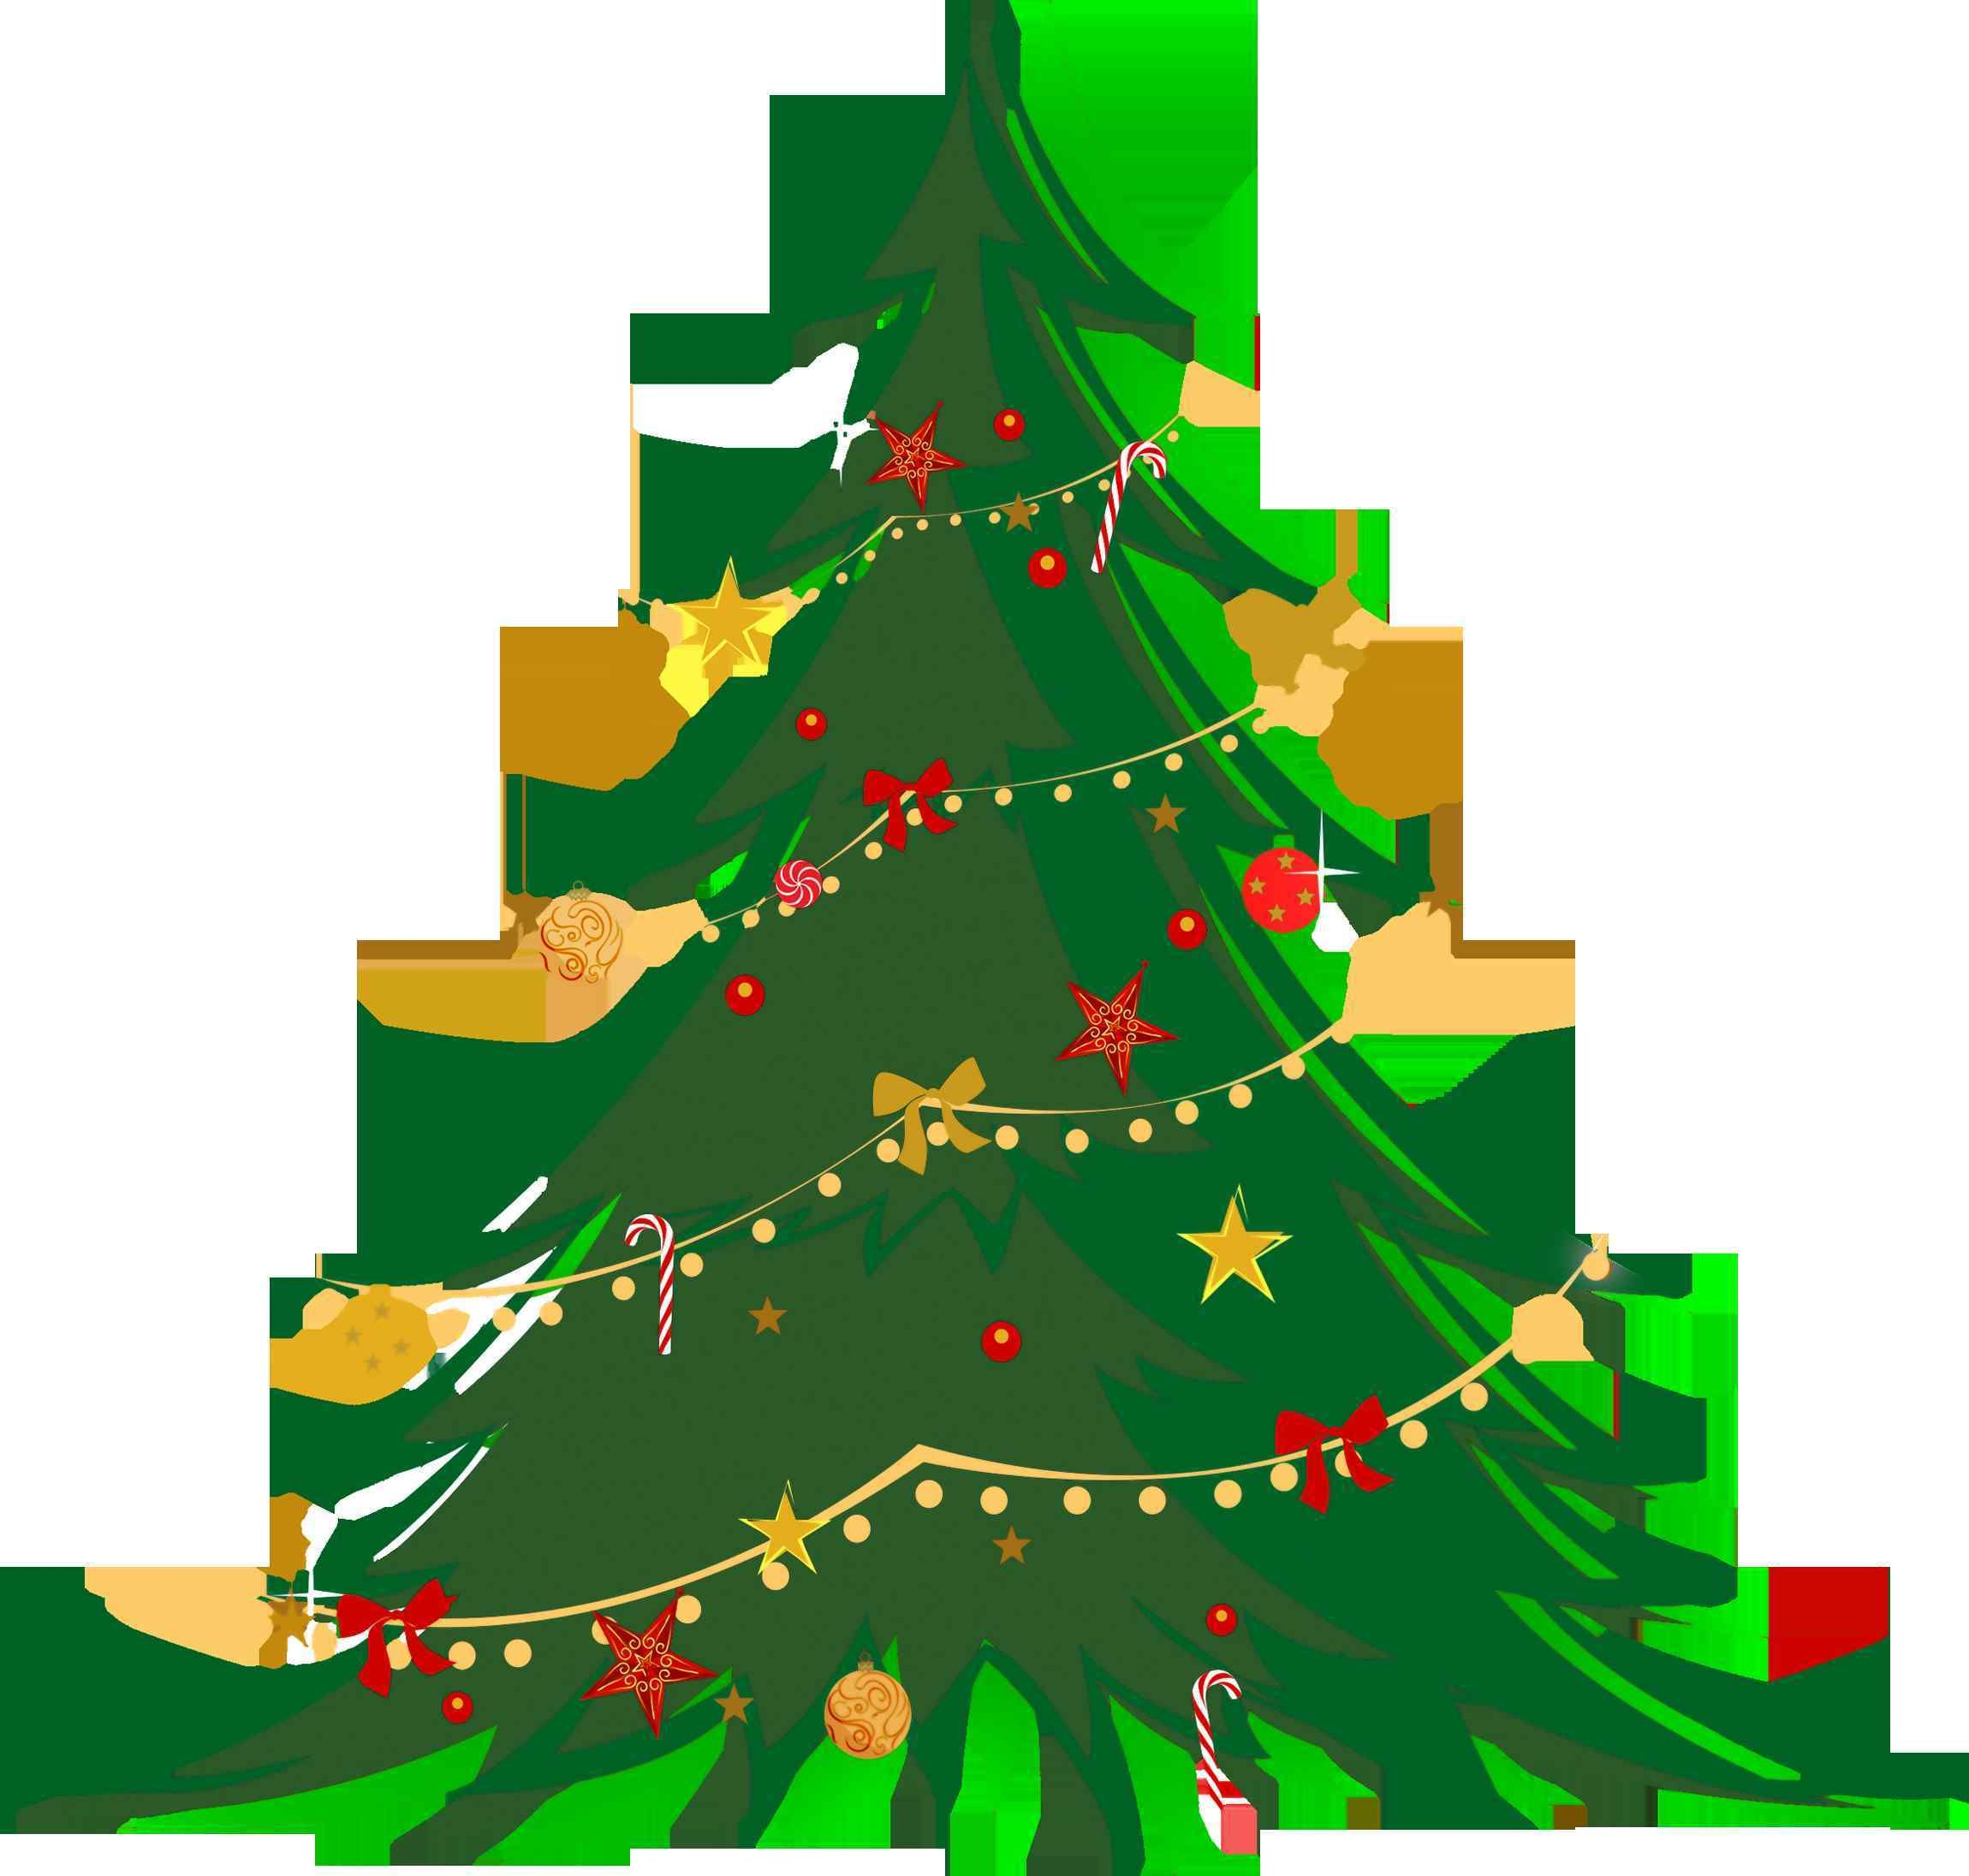 Christmas Tree Clipart Transparent Background.5 Lovely Christmas Tree Clipart Transparent Background